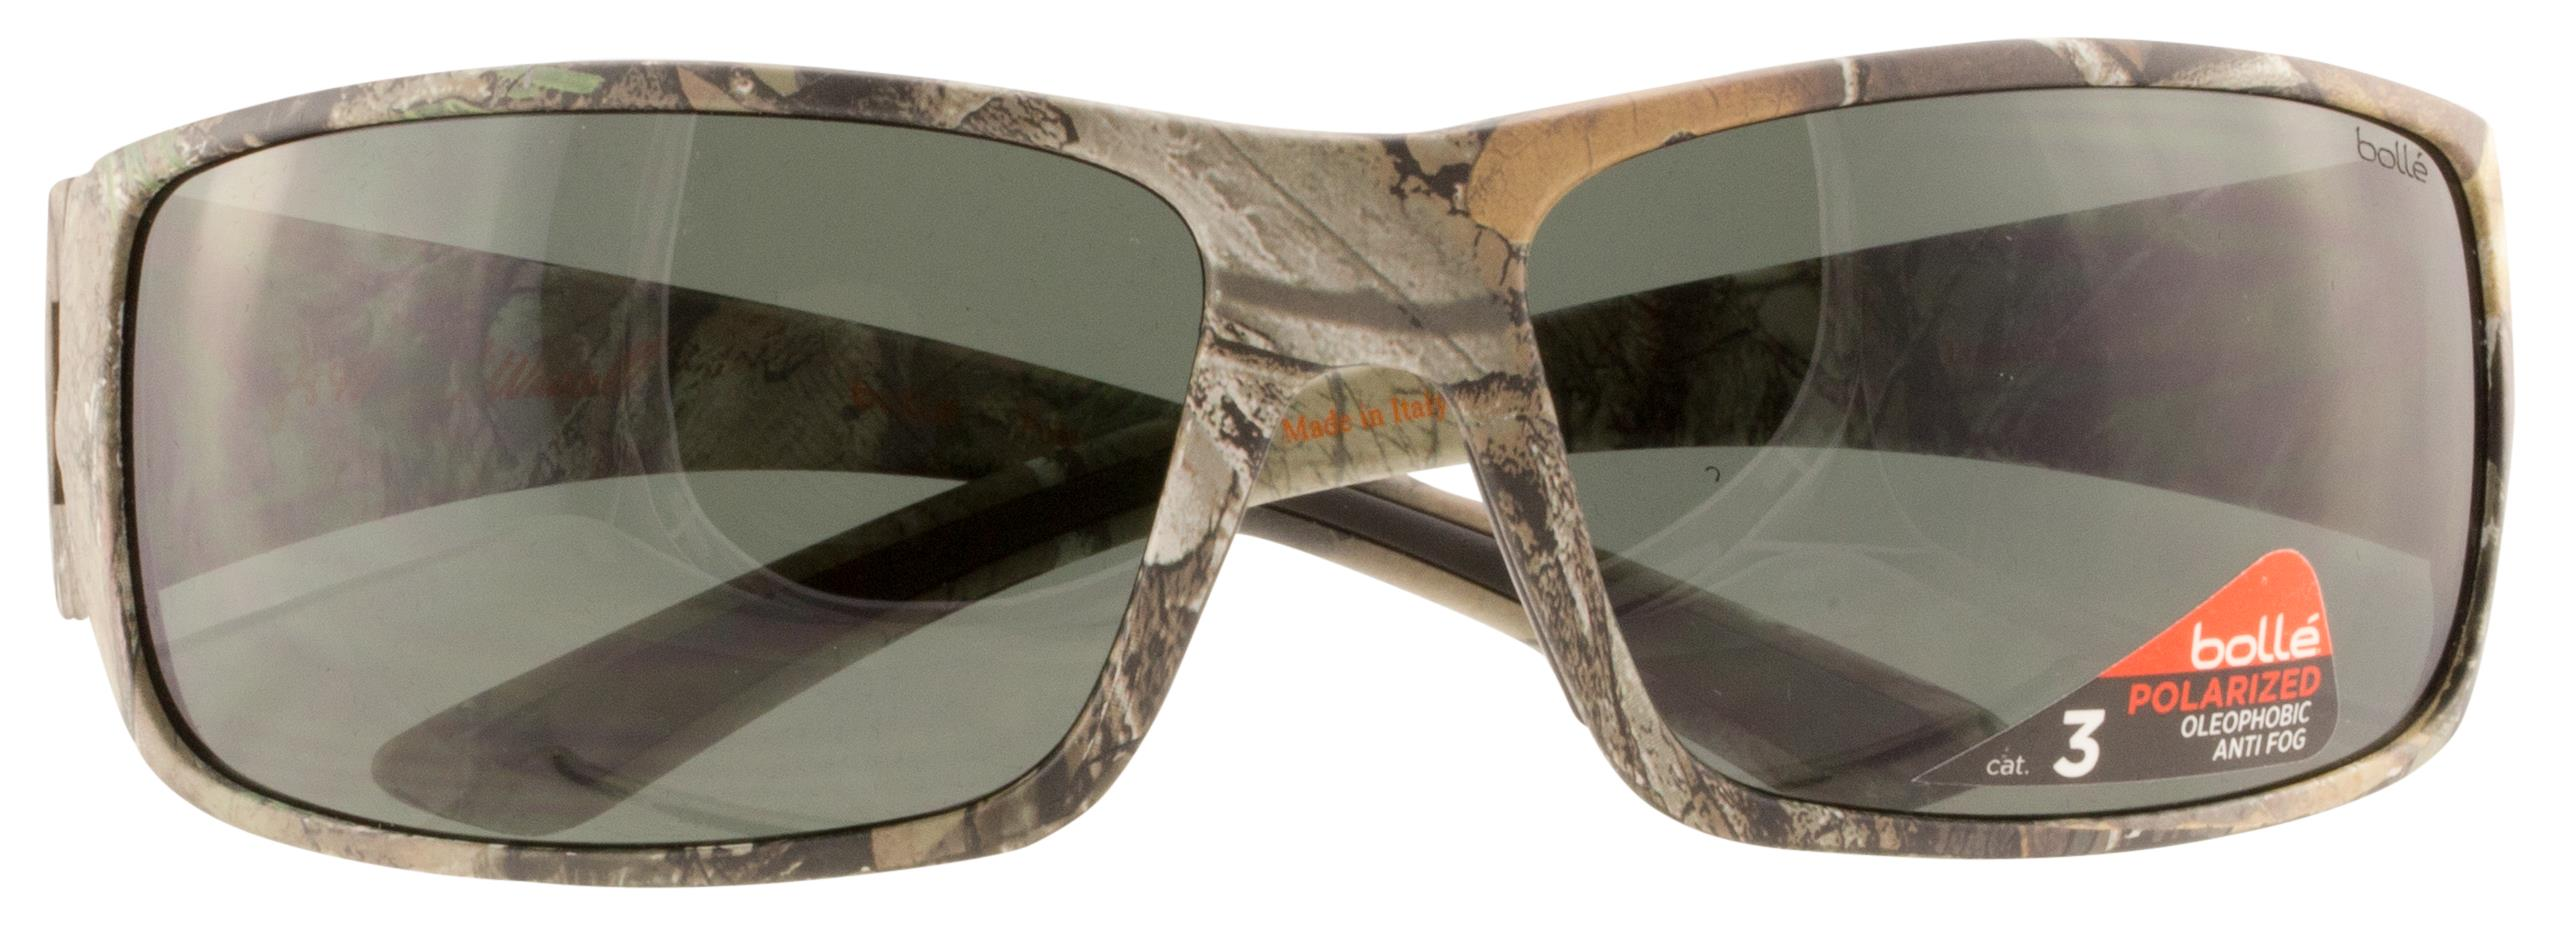 ef88676574c Bolle 12035 Tigersnake Shooting Sporting Glasses Realtree Xtra